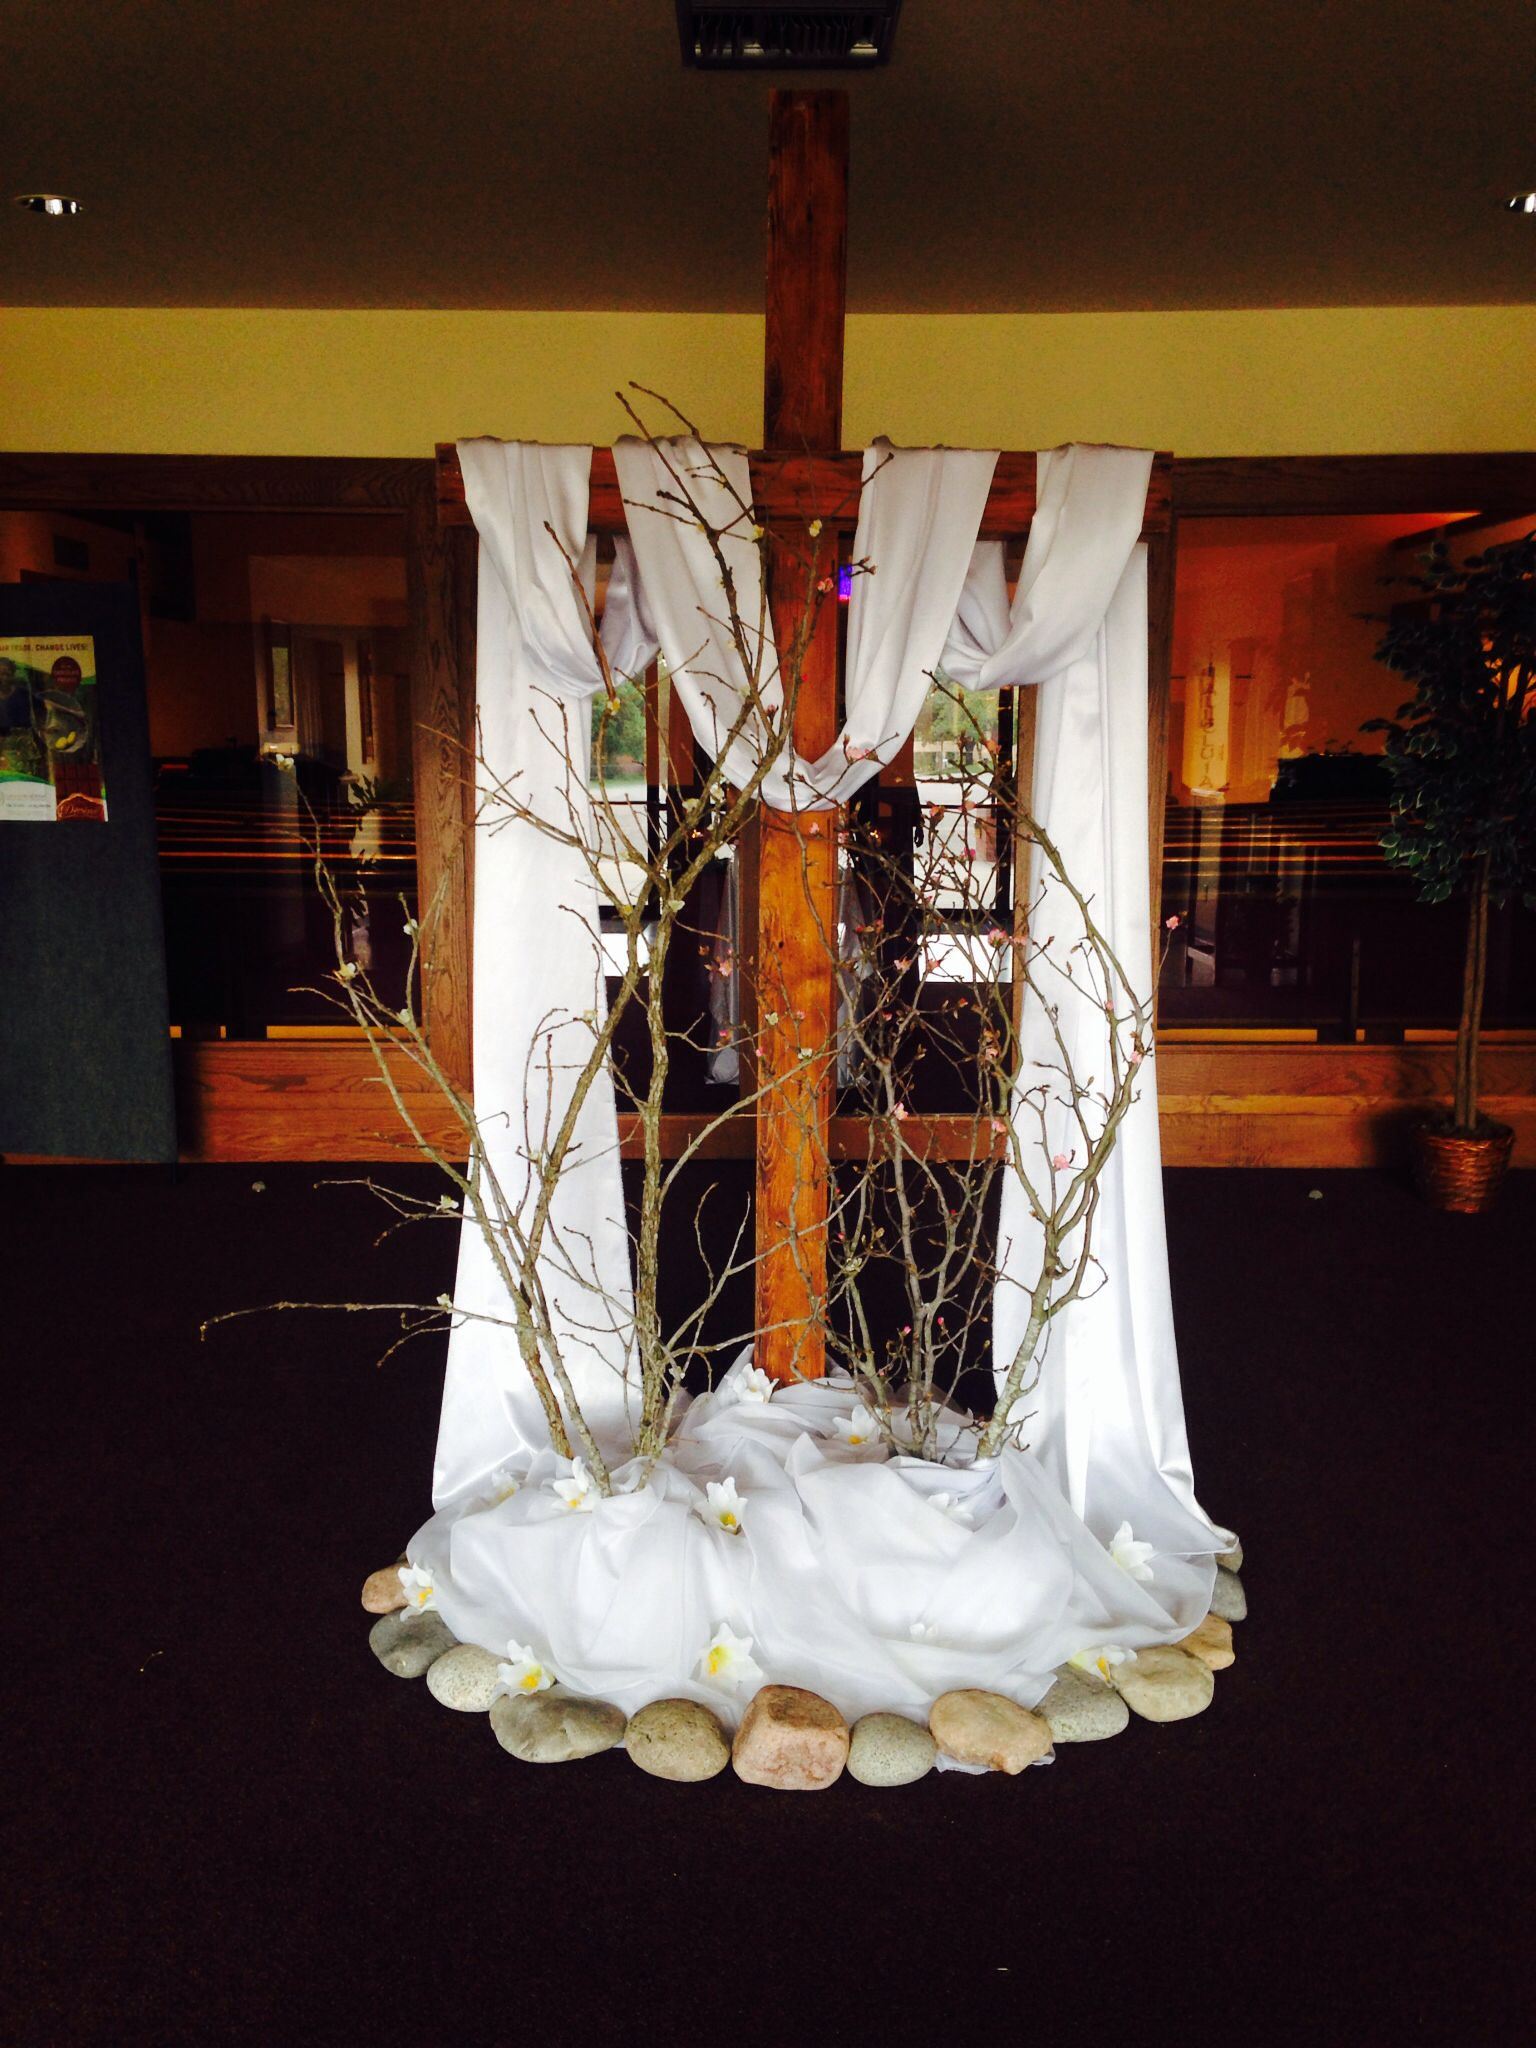 Church decoration for Easter | Church decorations | Pinterest